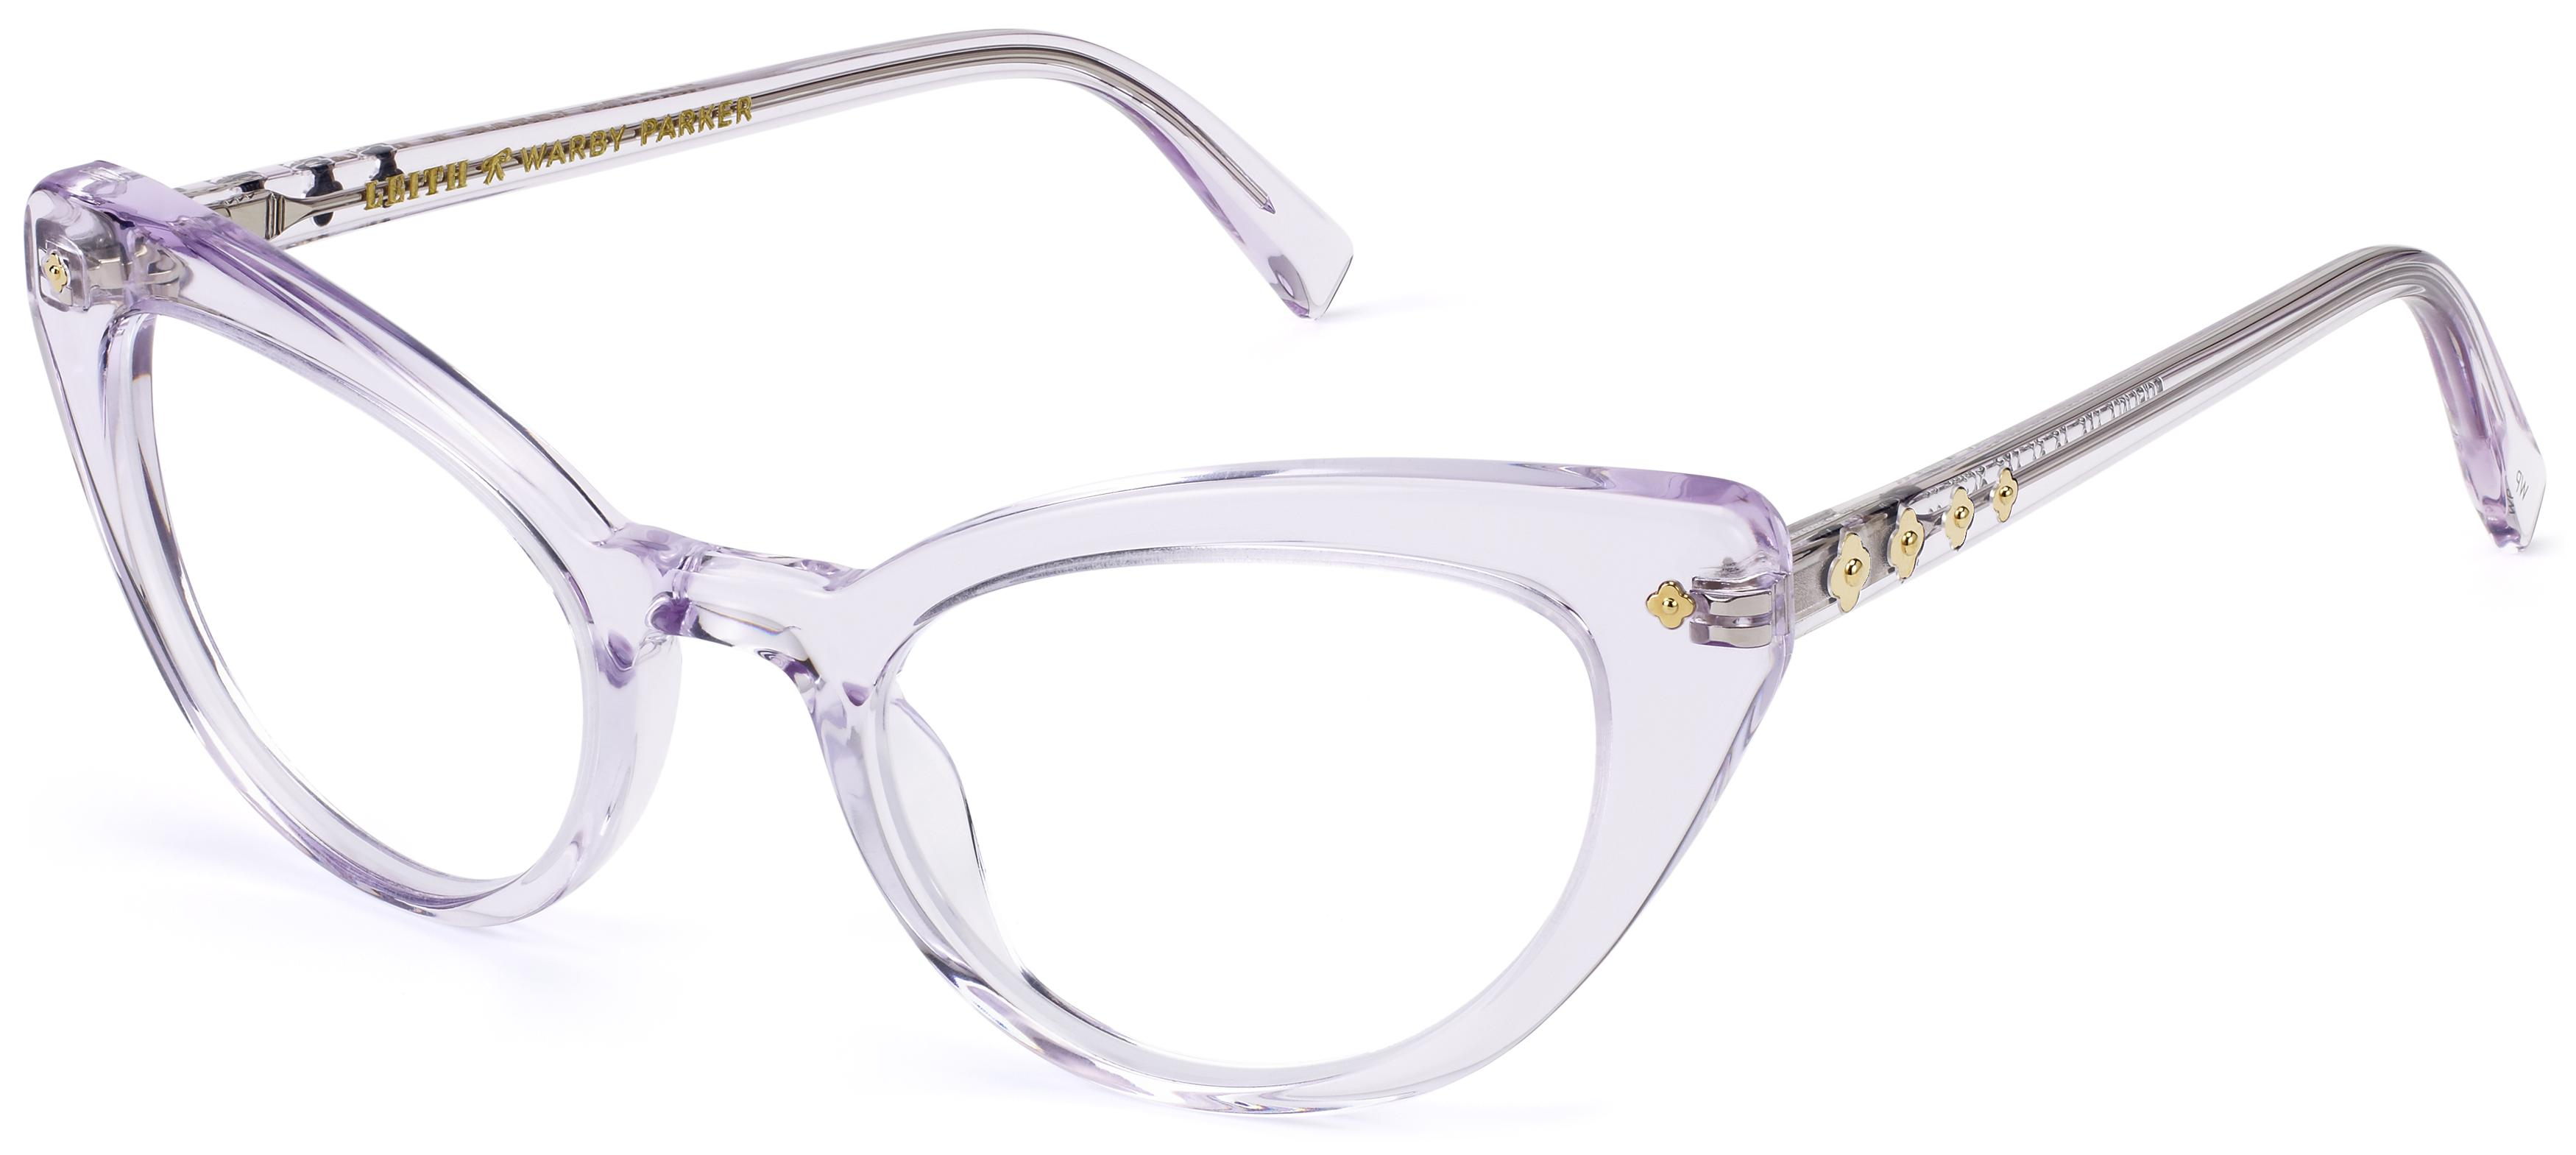 Evelina is a vintage-inspired cat-eye designed by Leith Clark and peppered with floral metalwork at its endpieces and temples.